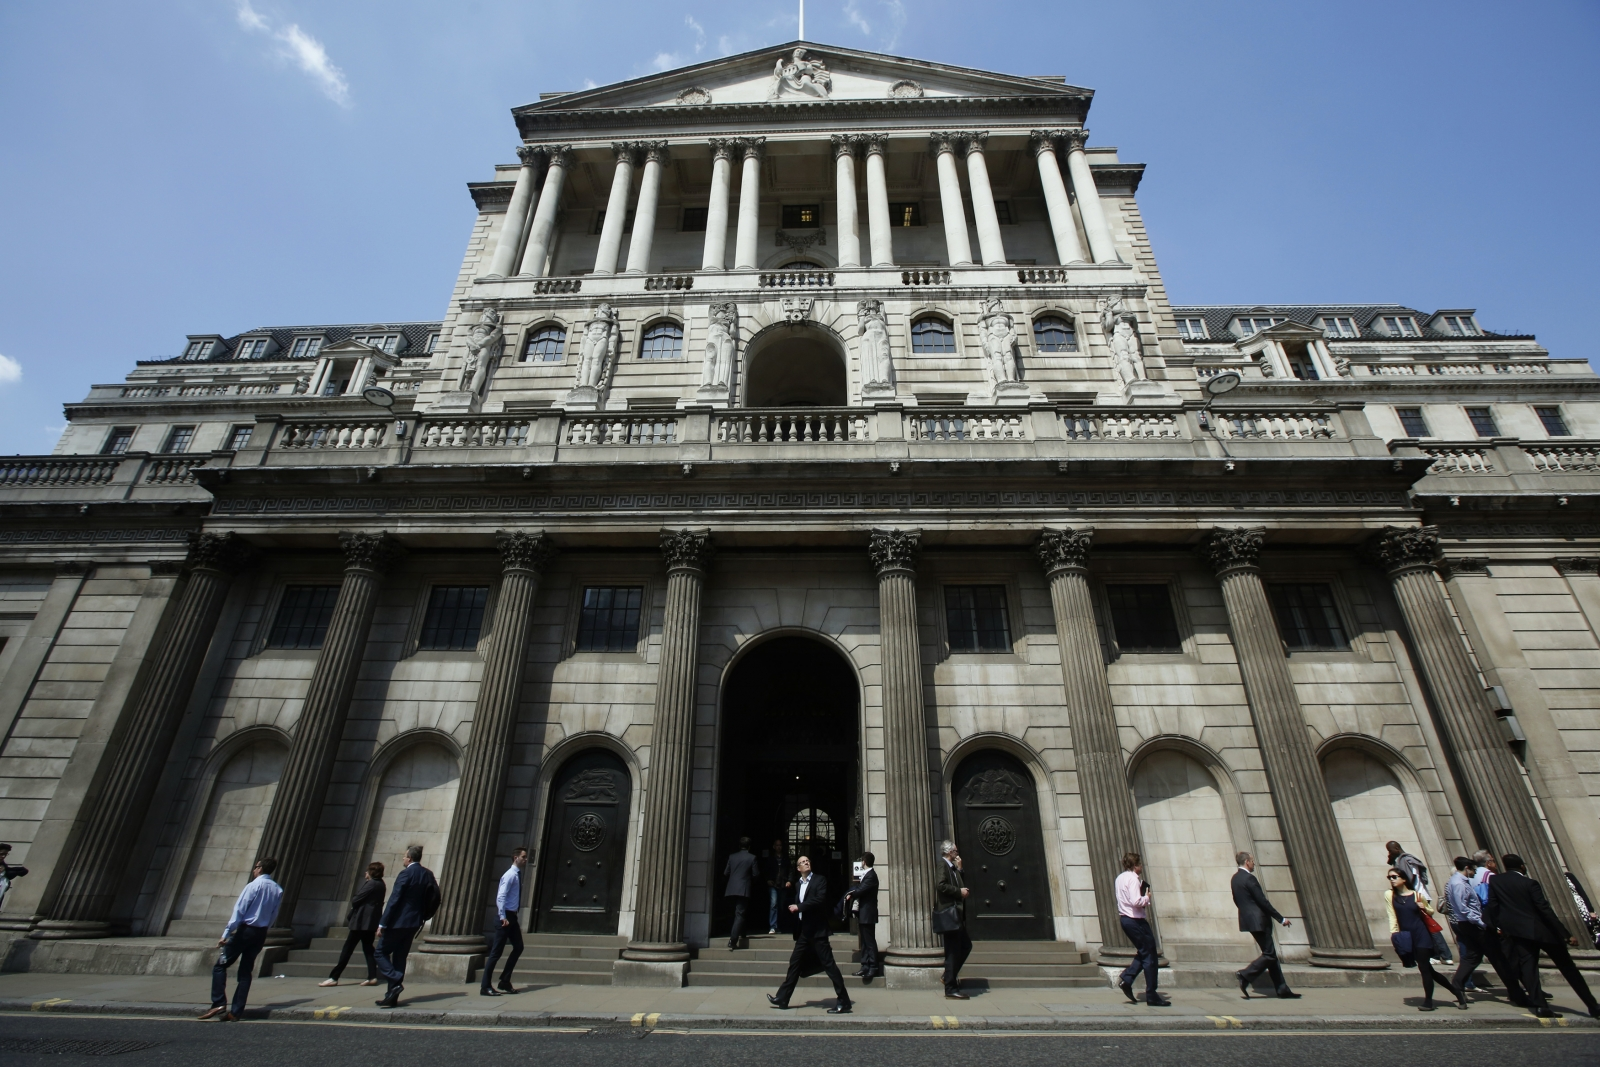 The Bank of England may have overstated amount to be borrowed